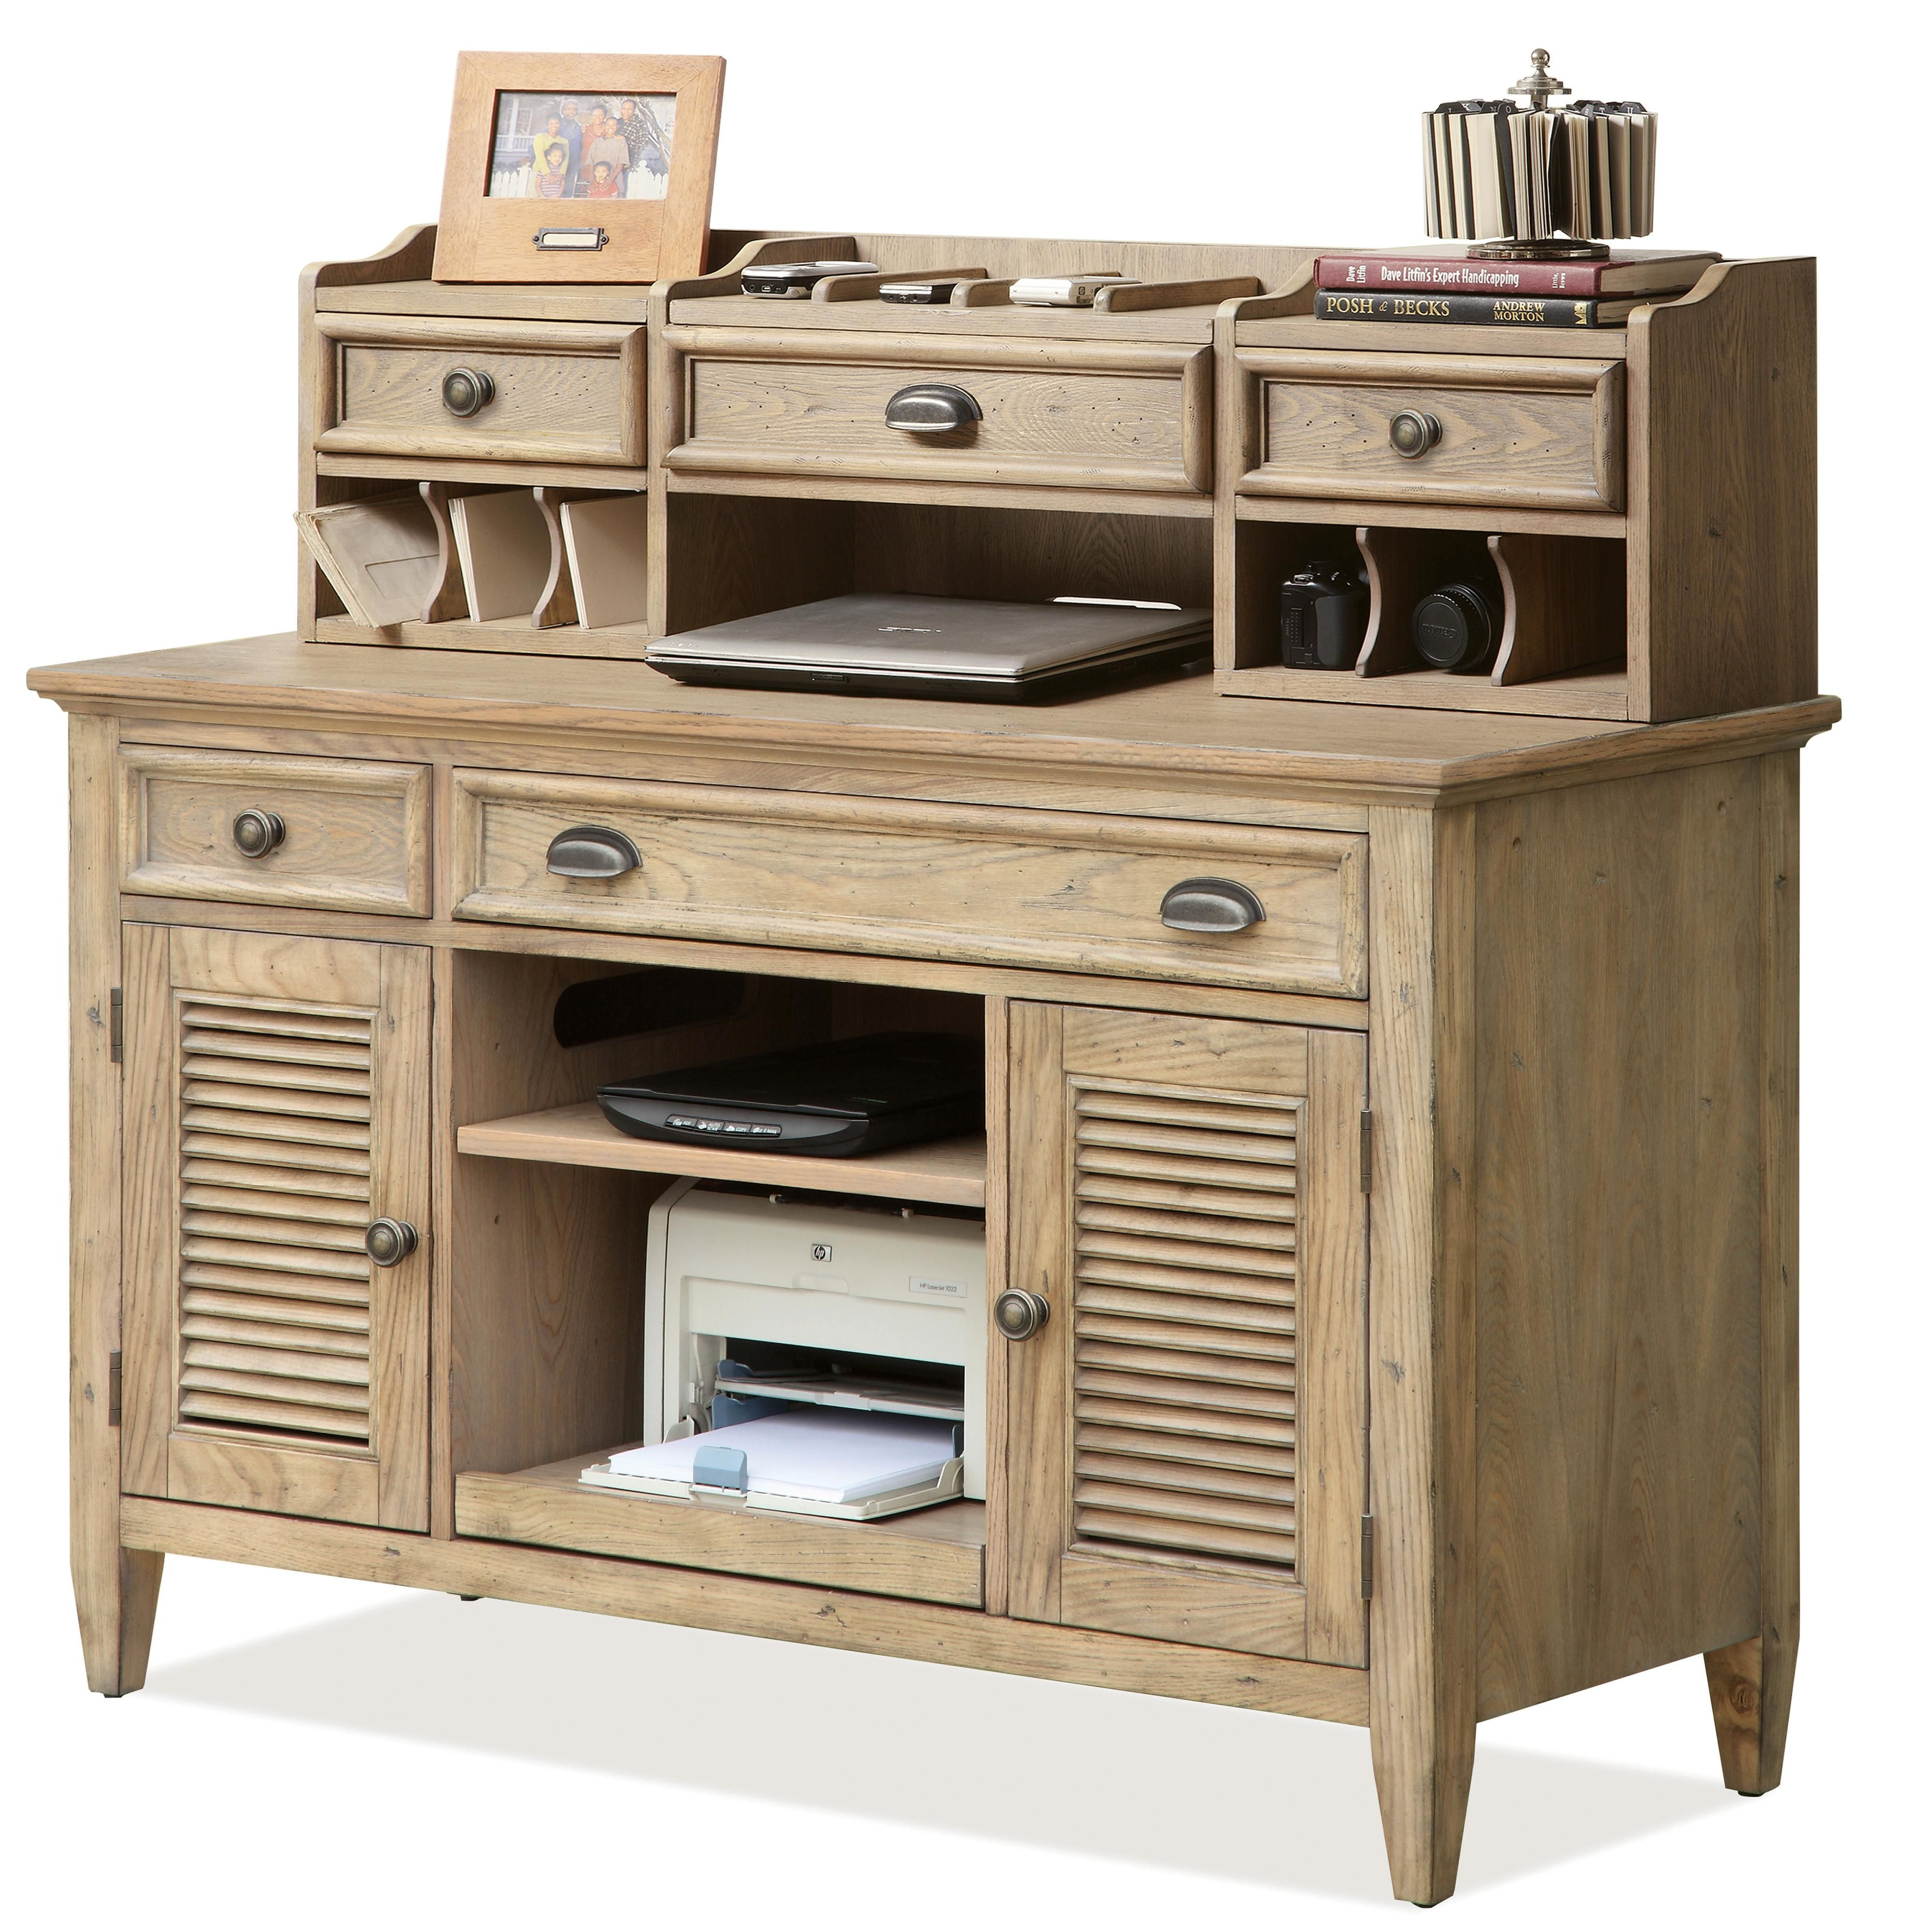 Beautiful Wooden Corner Desk With Hutch Designs Coventry Writing Credenza By Riverside